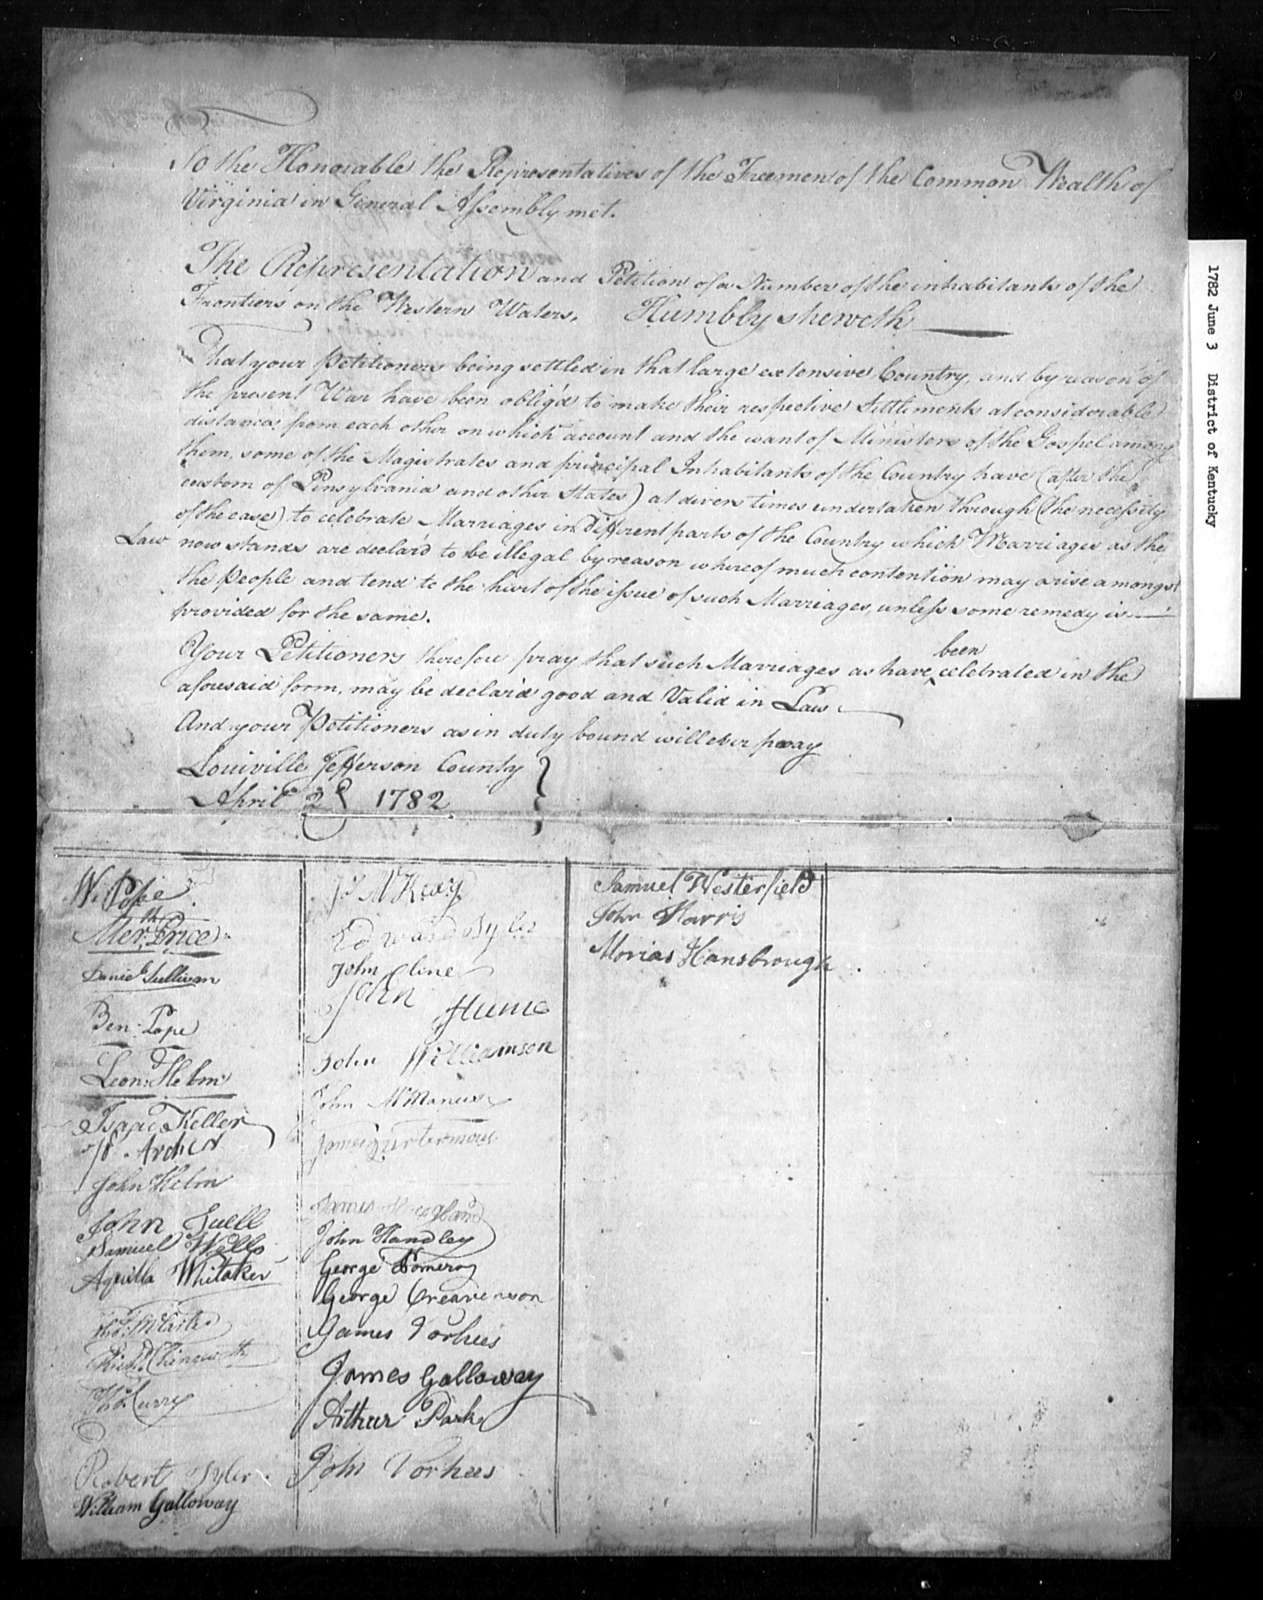 June 3, 1782, District of Kentucky, Due to shortage of ministers, to declare marriages already performed by civil officers legal.